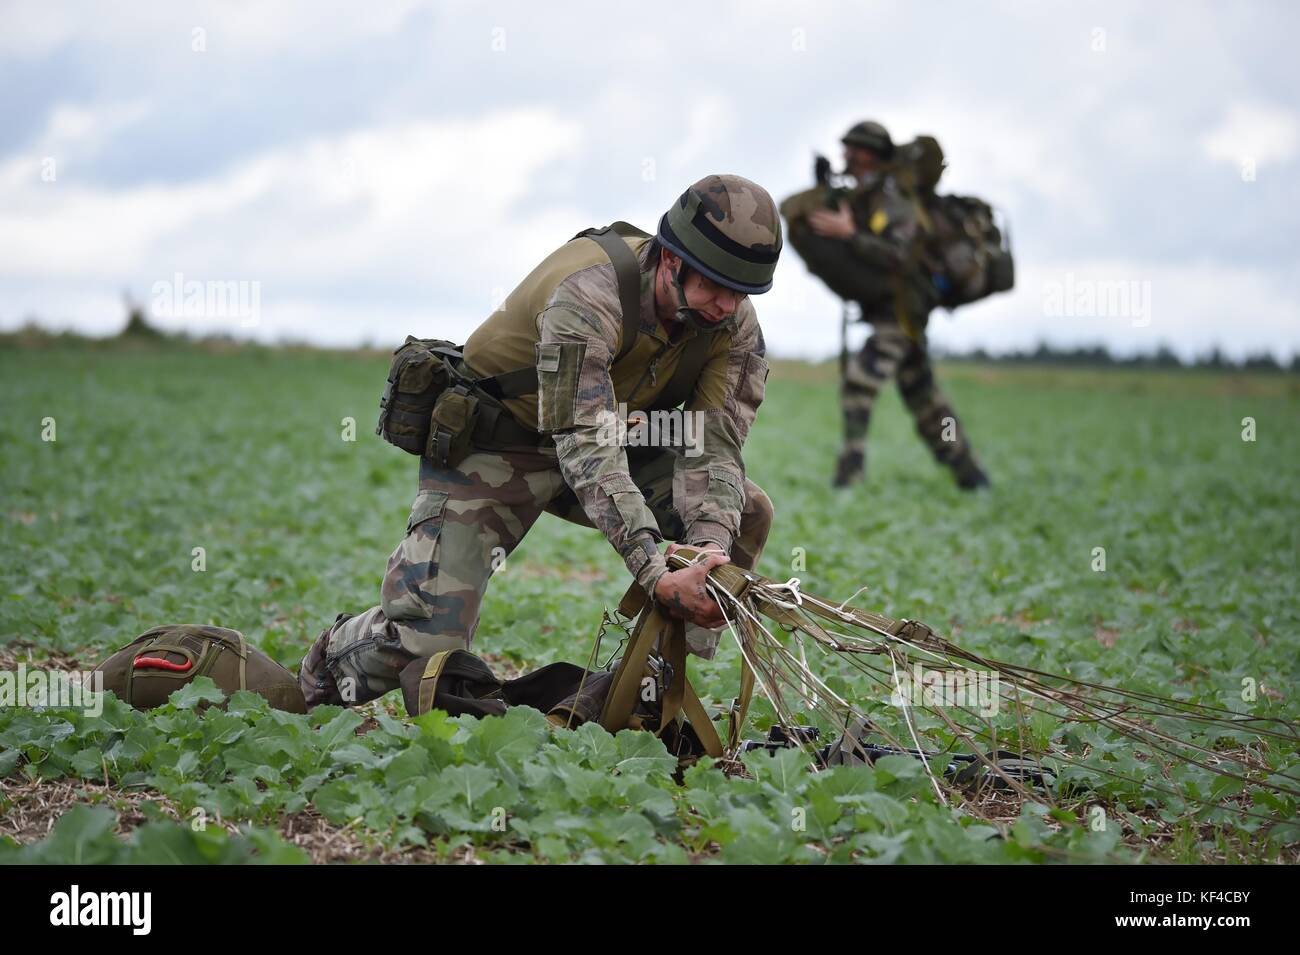 A French soldier recovers his parachute after an airborne operation during Exercise Swift Response near the Joint - Stock Image